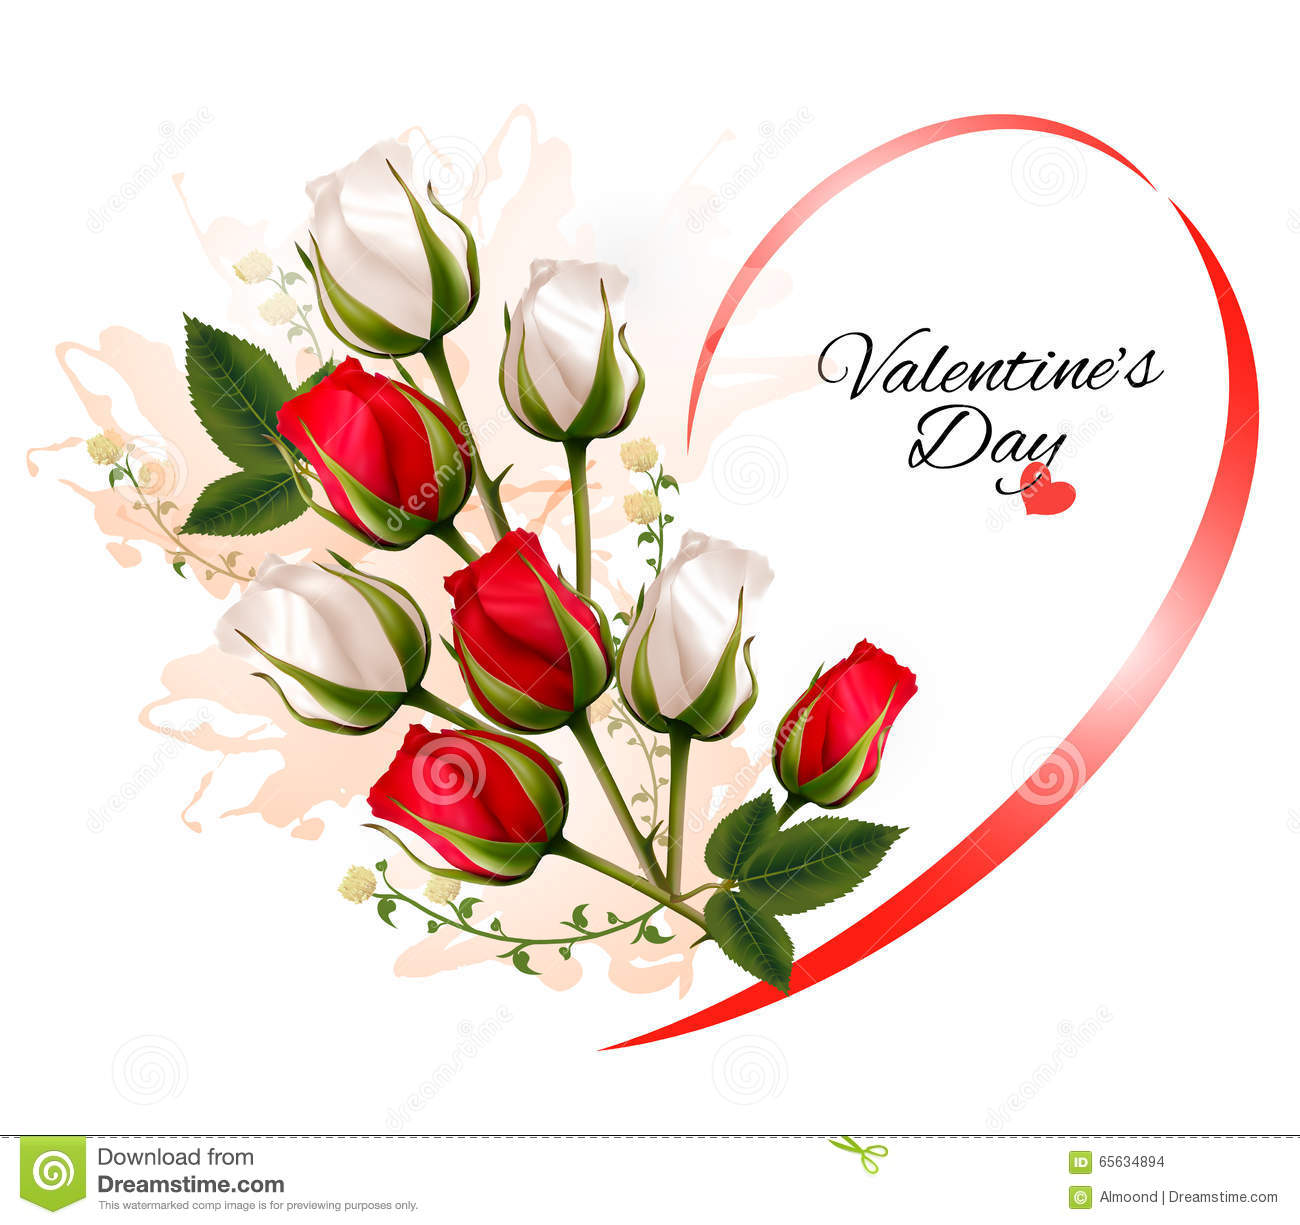 Happy valentines day beautiful background with roses stock happy valentines day beautiful background with roses stock images dhlflorist Image collections